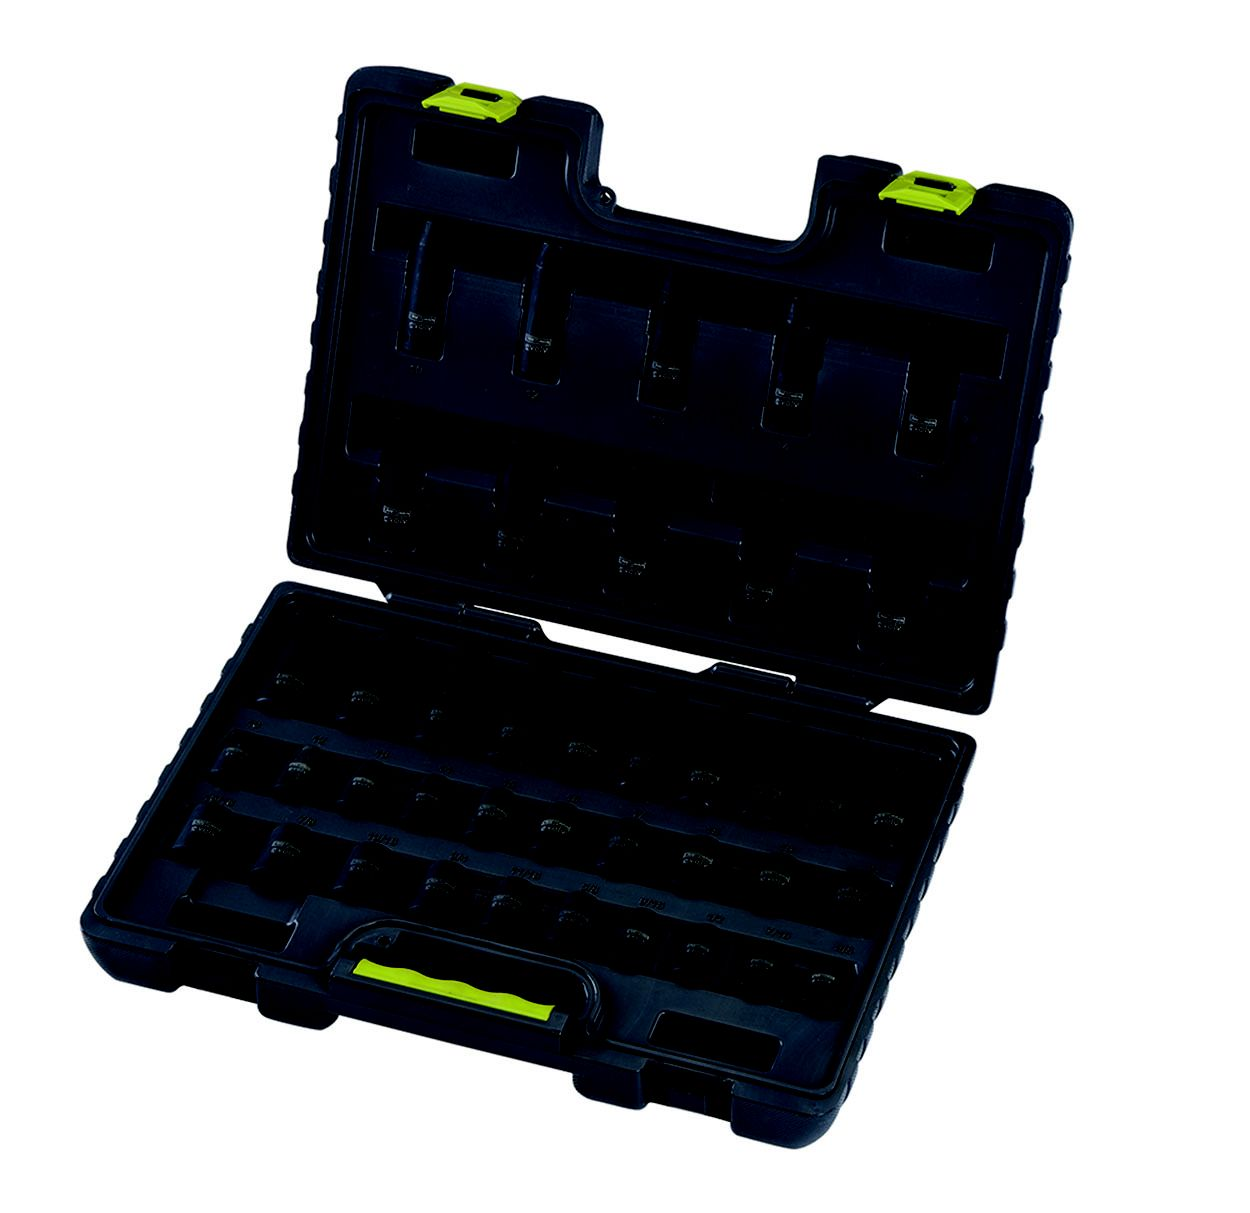 40pc Ultimate Impact Socket Set, 1/2